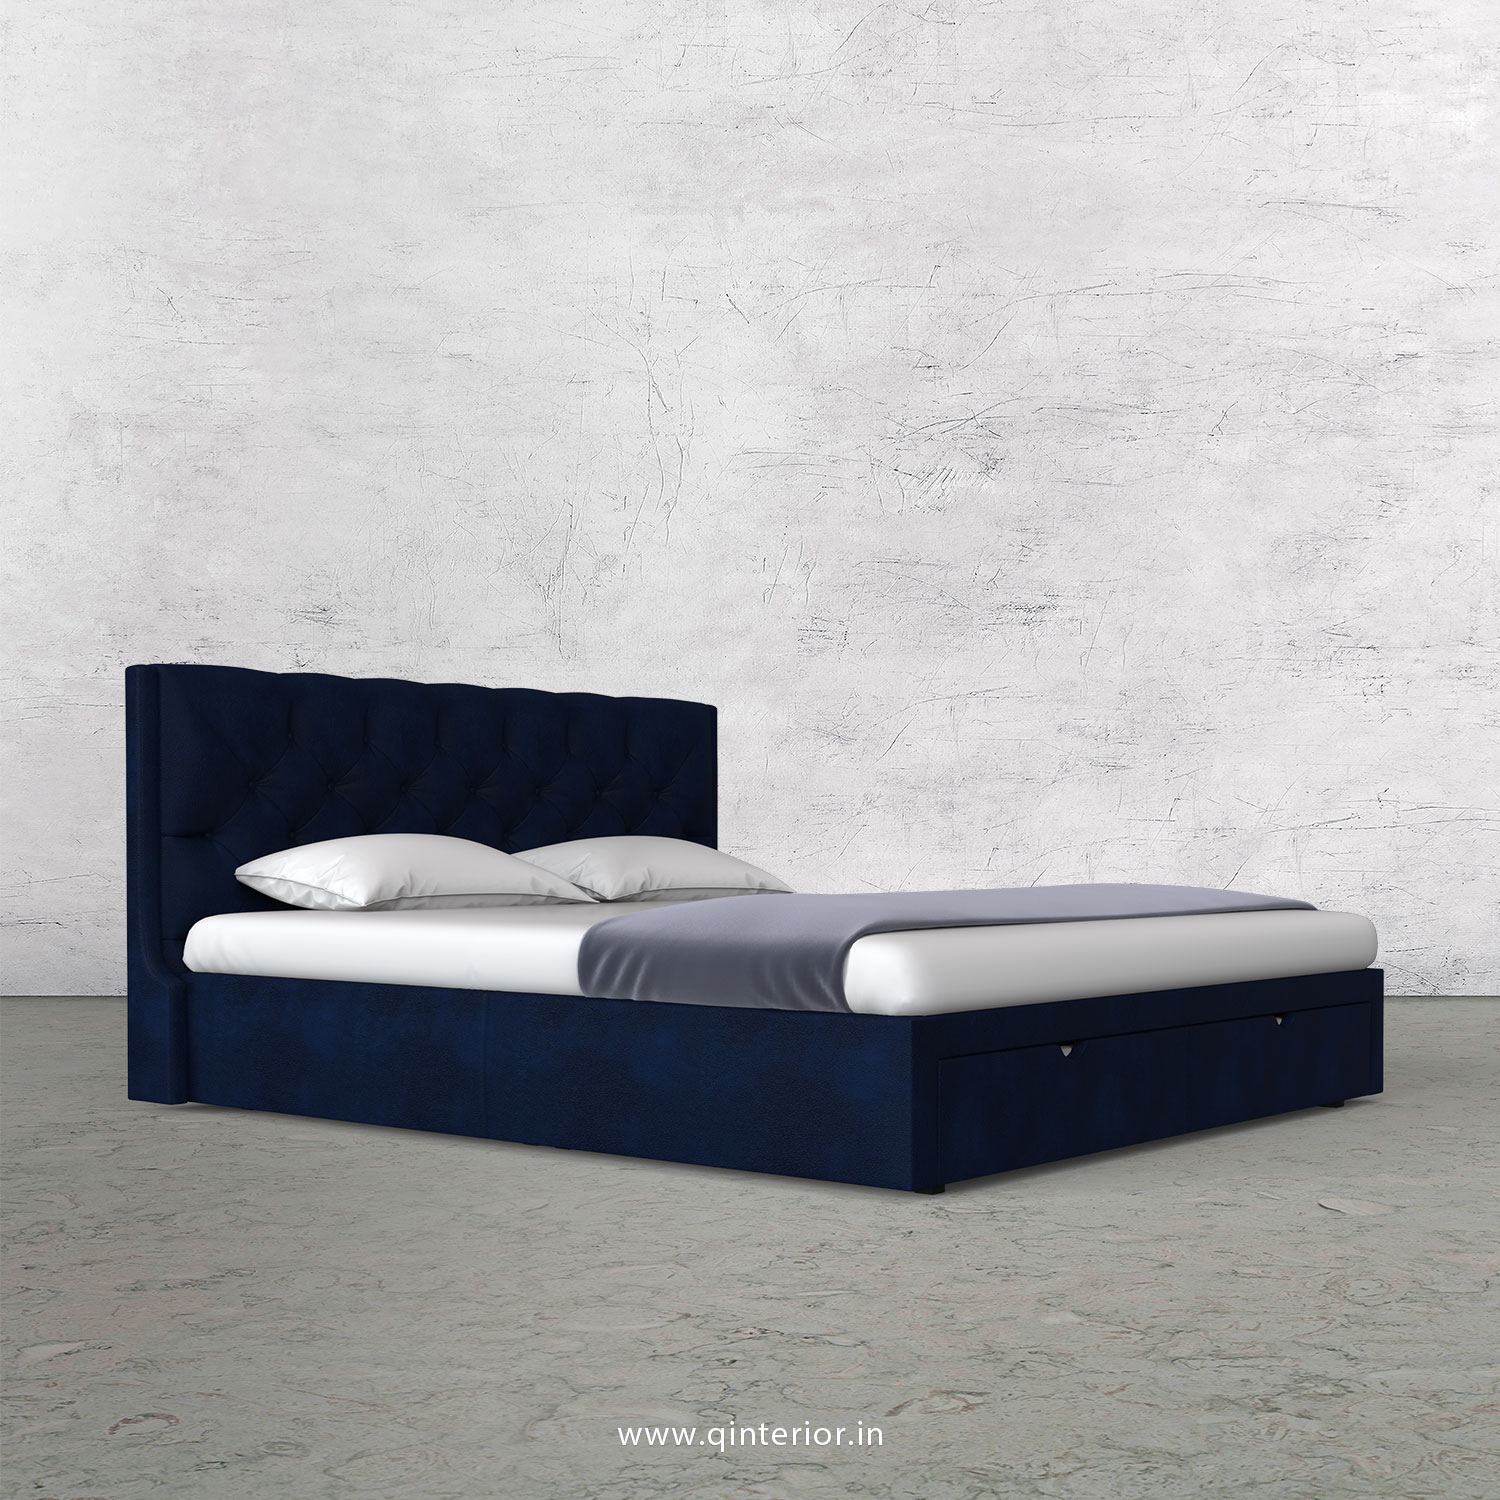 Scorpius Queen Storage Bed in Fab Leather Fabric - QBD001 FL13